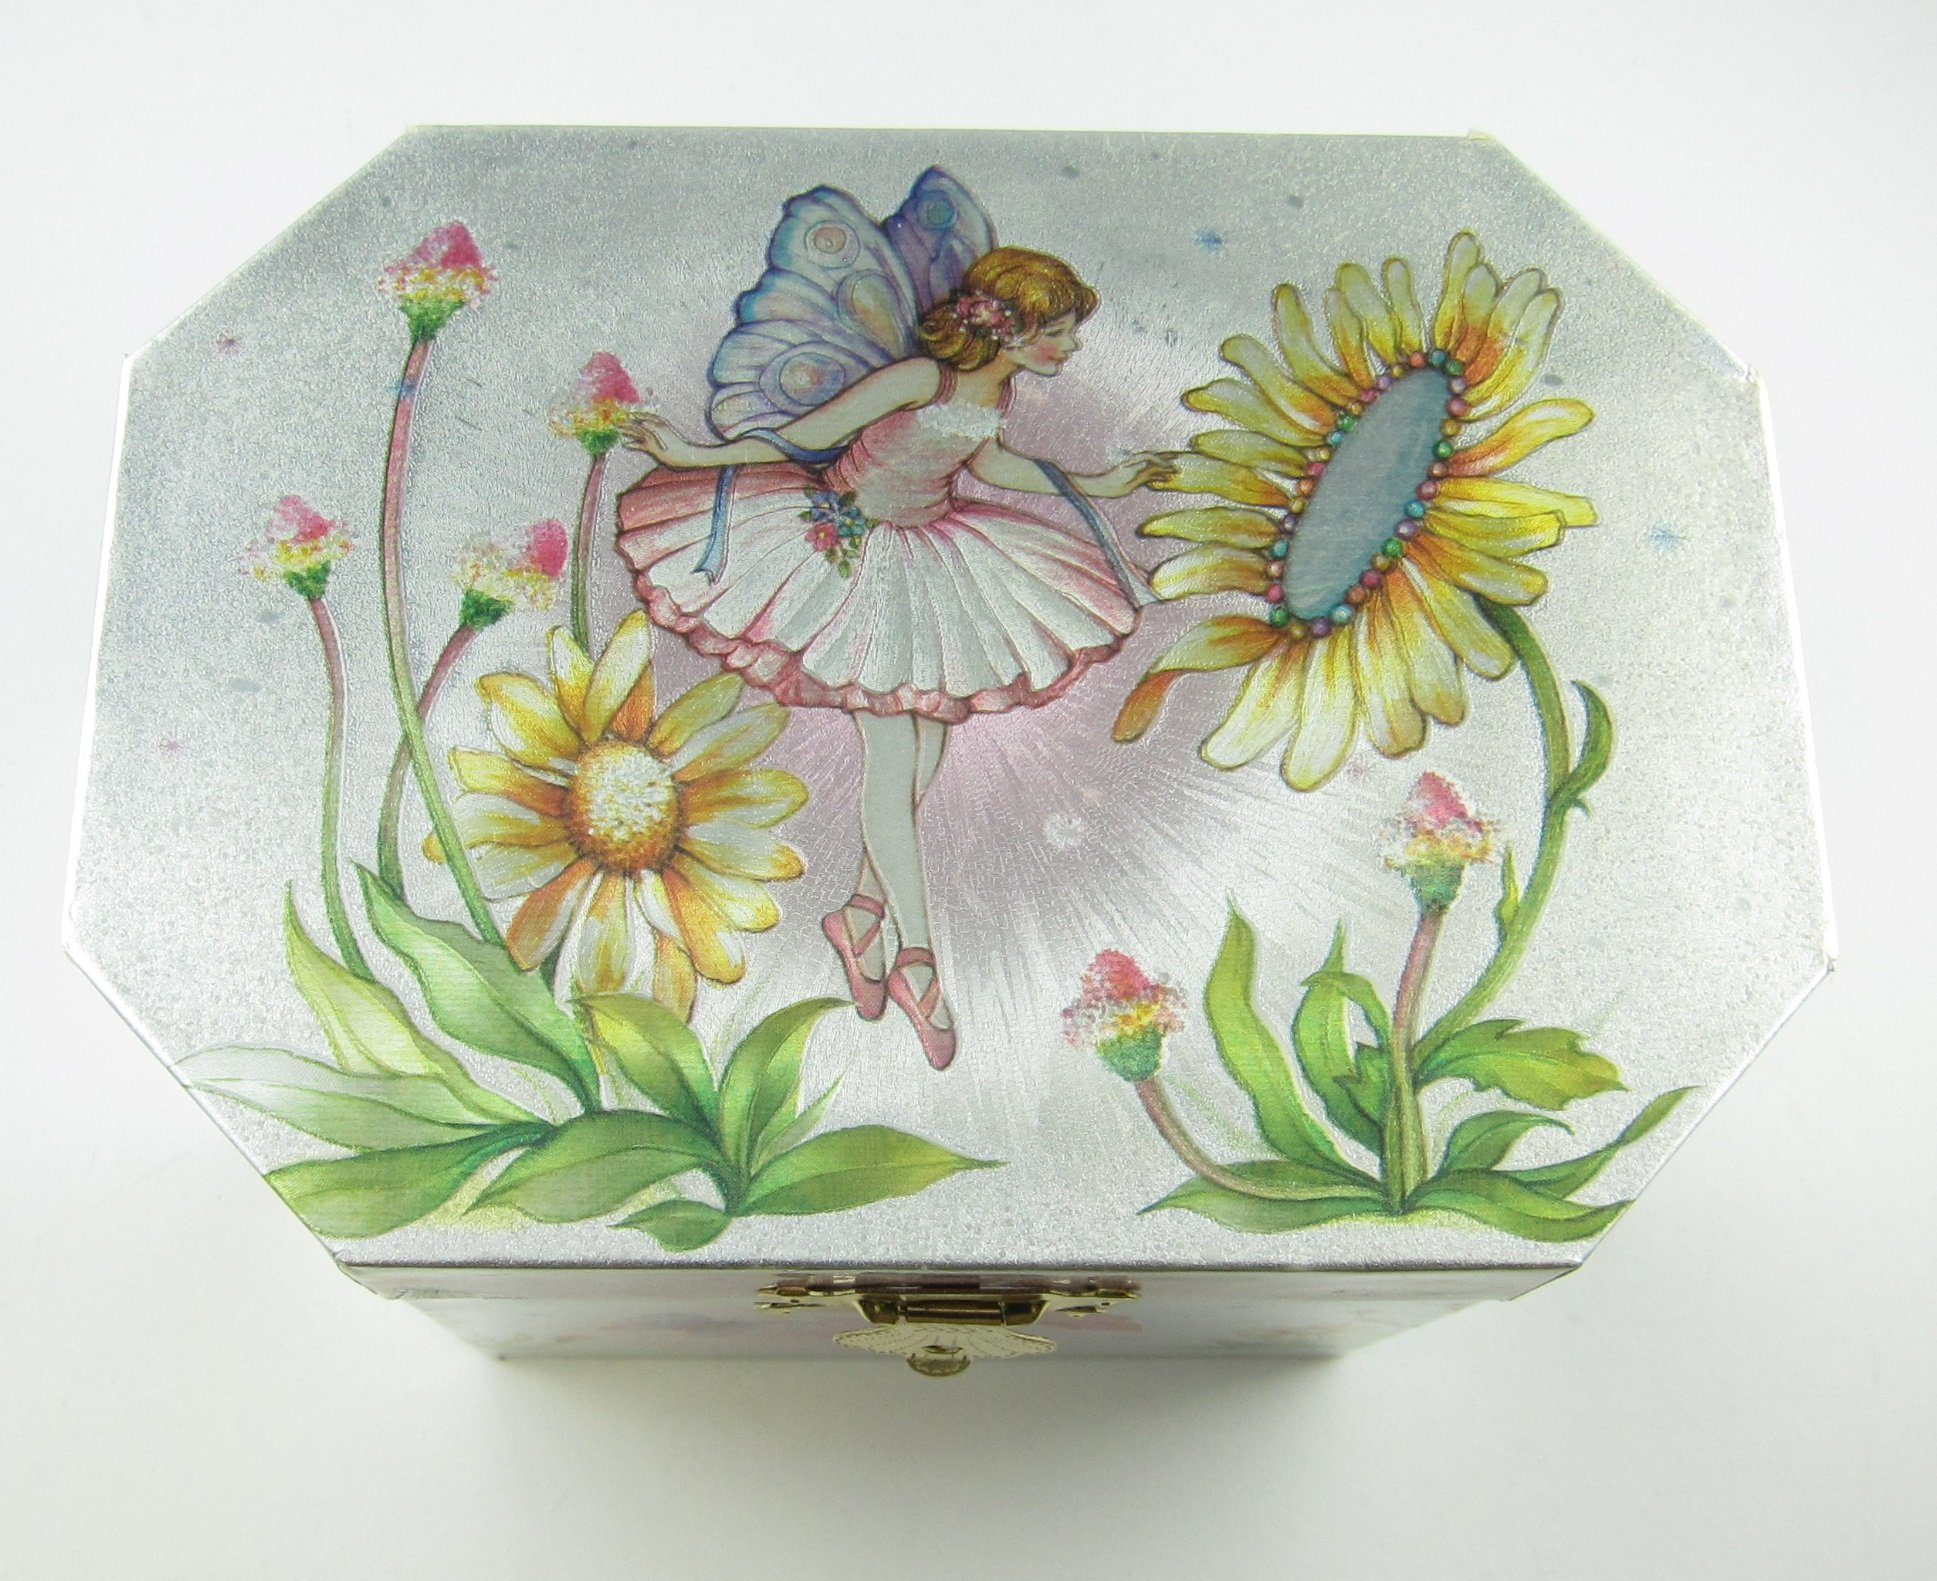 Fairy Ballerina Jewelry Music Box-Wooden material (Wood) by GTP (Image #2)